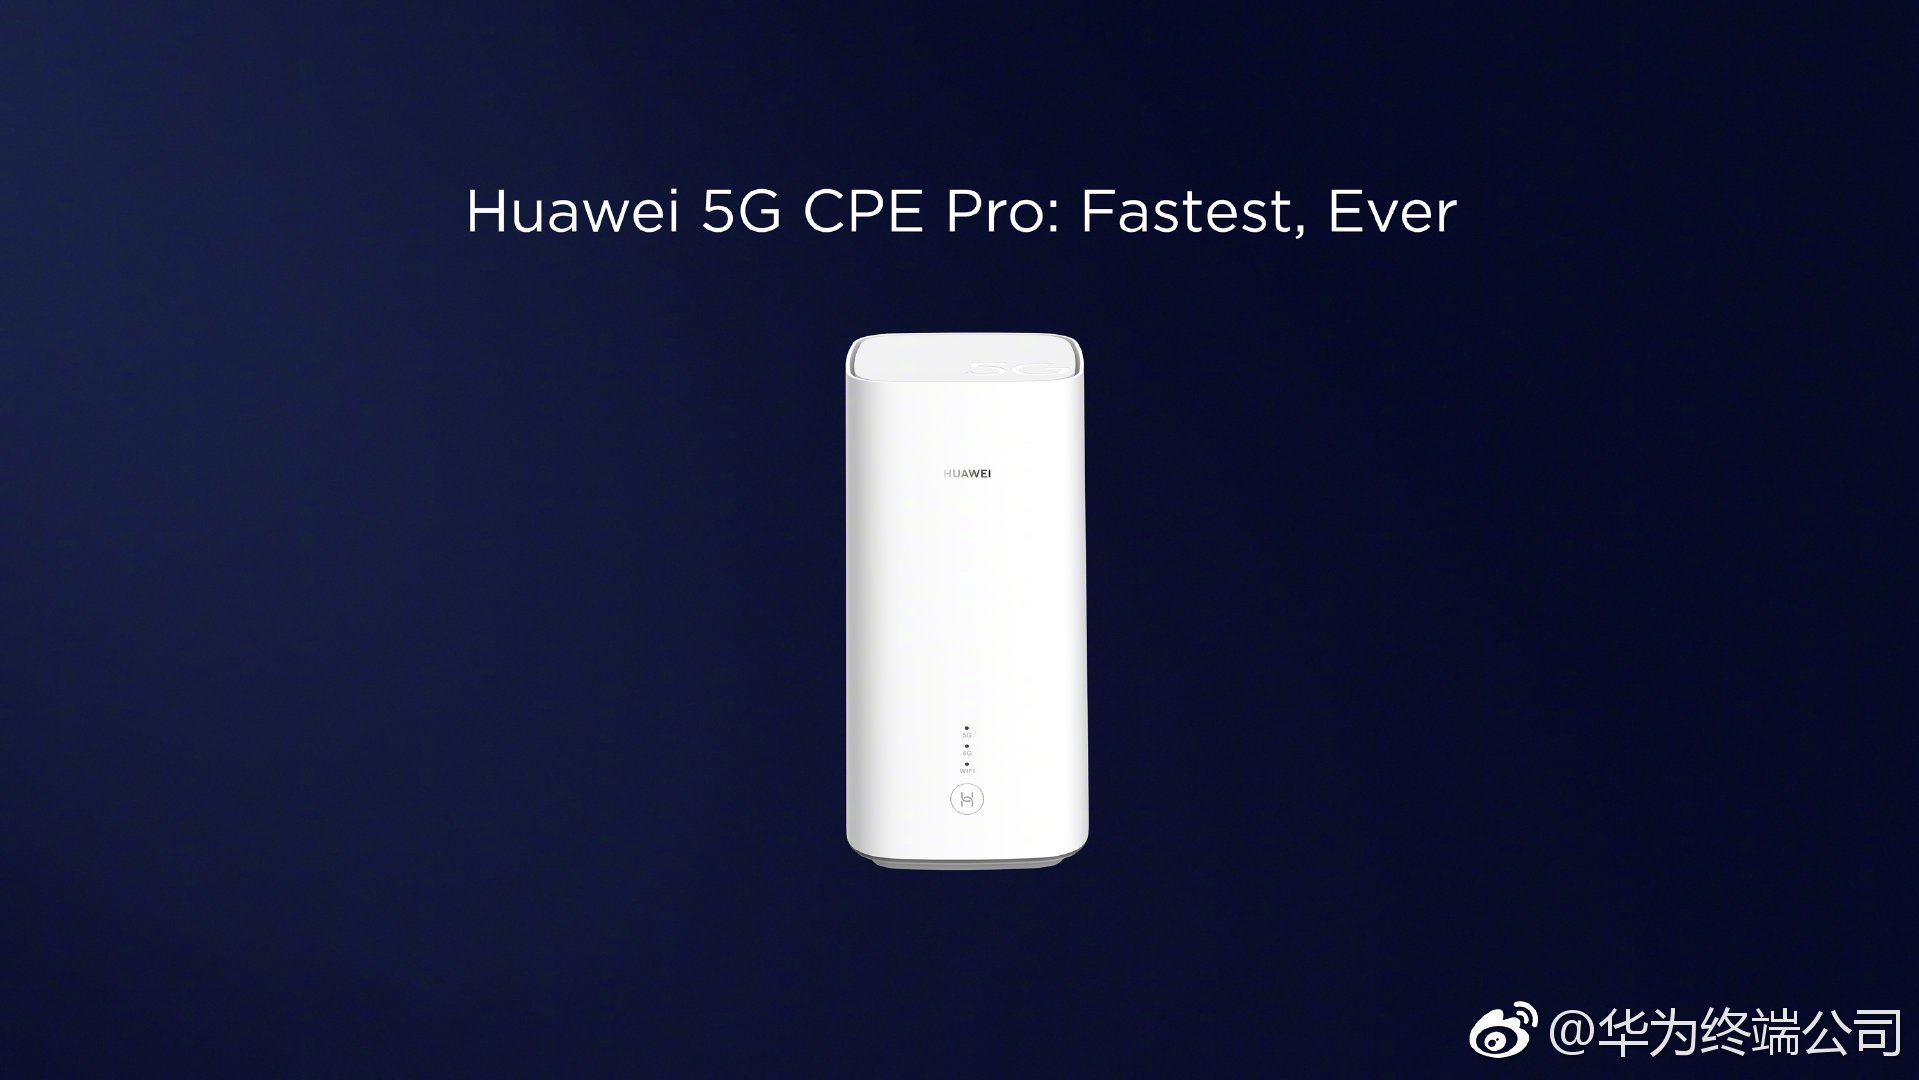 MWC 2019 Pre - Conference : Huawei released 5G CPE Pro: 3 2